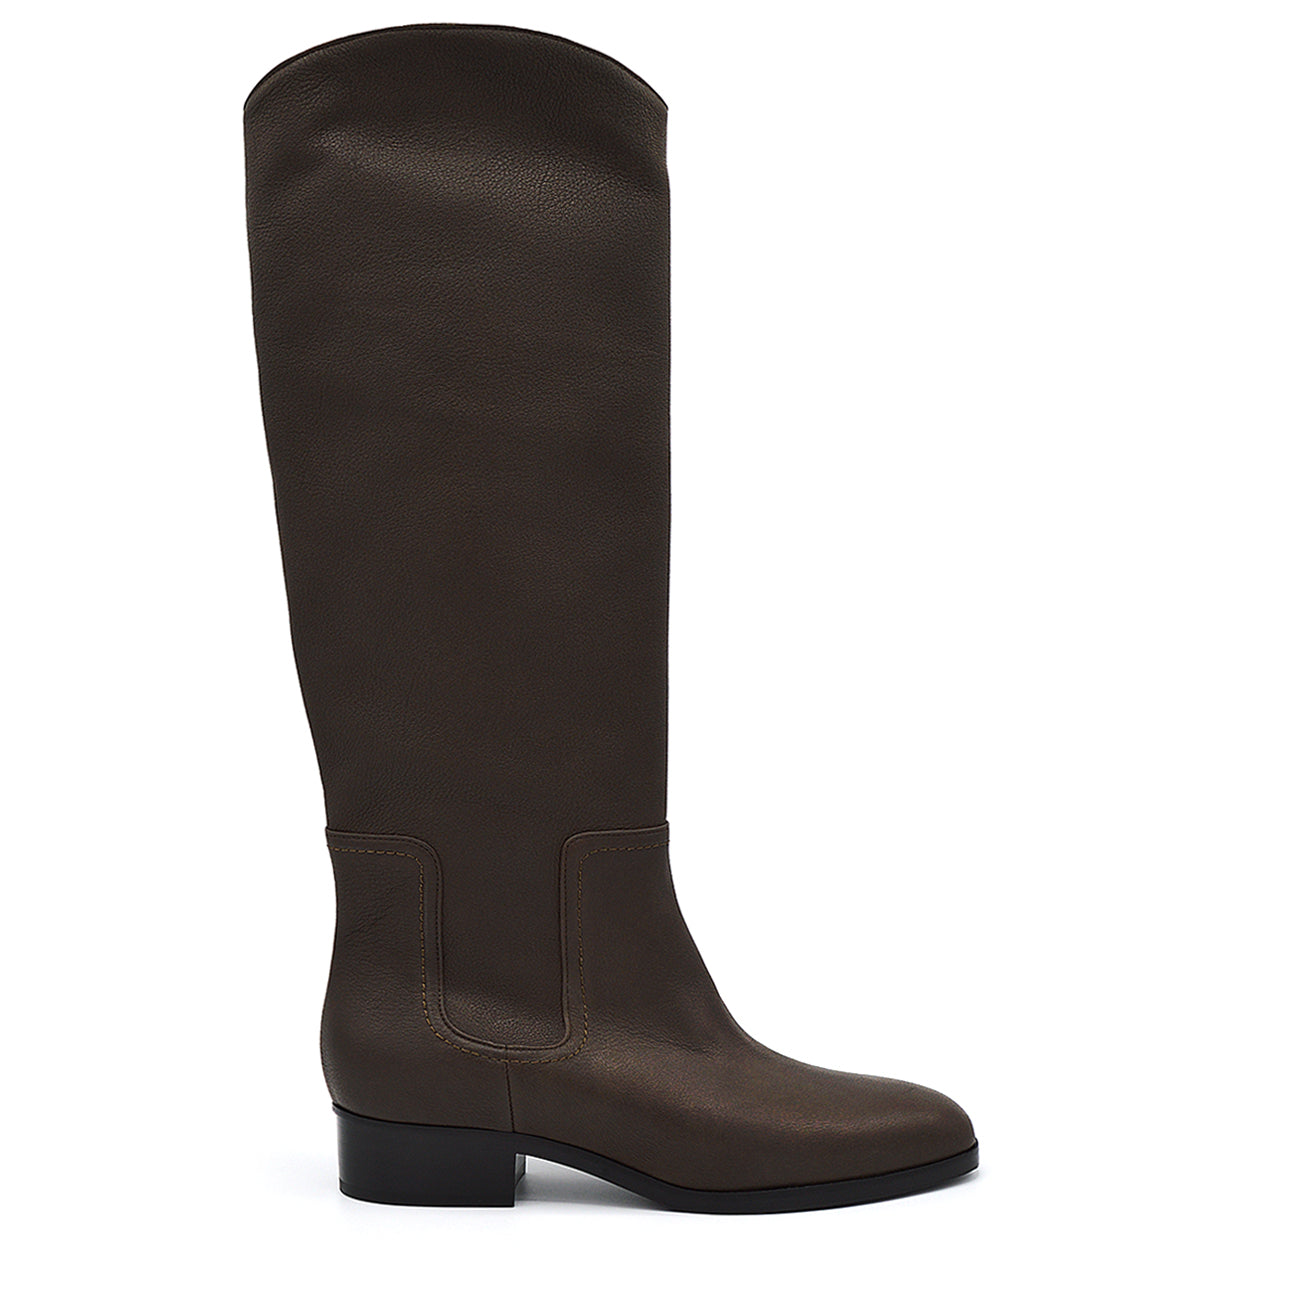 Isaby. <br> Espresso brown calfskin knee-high boots